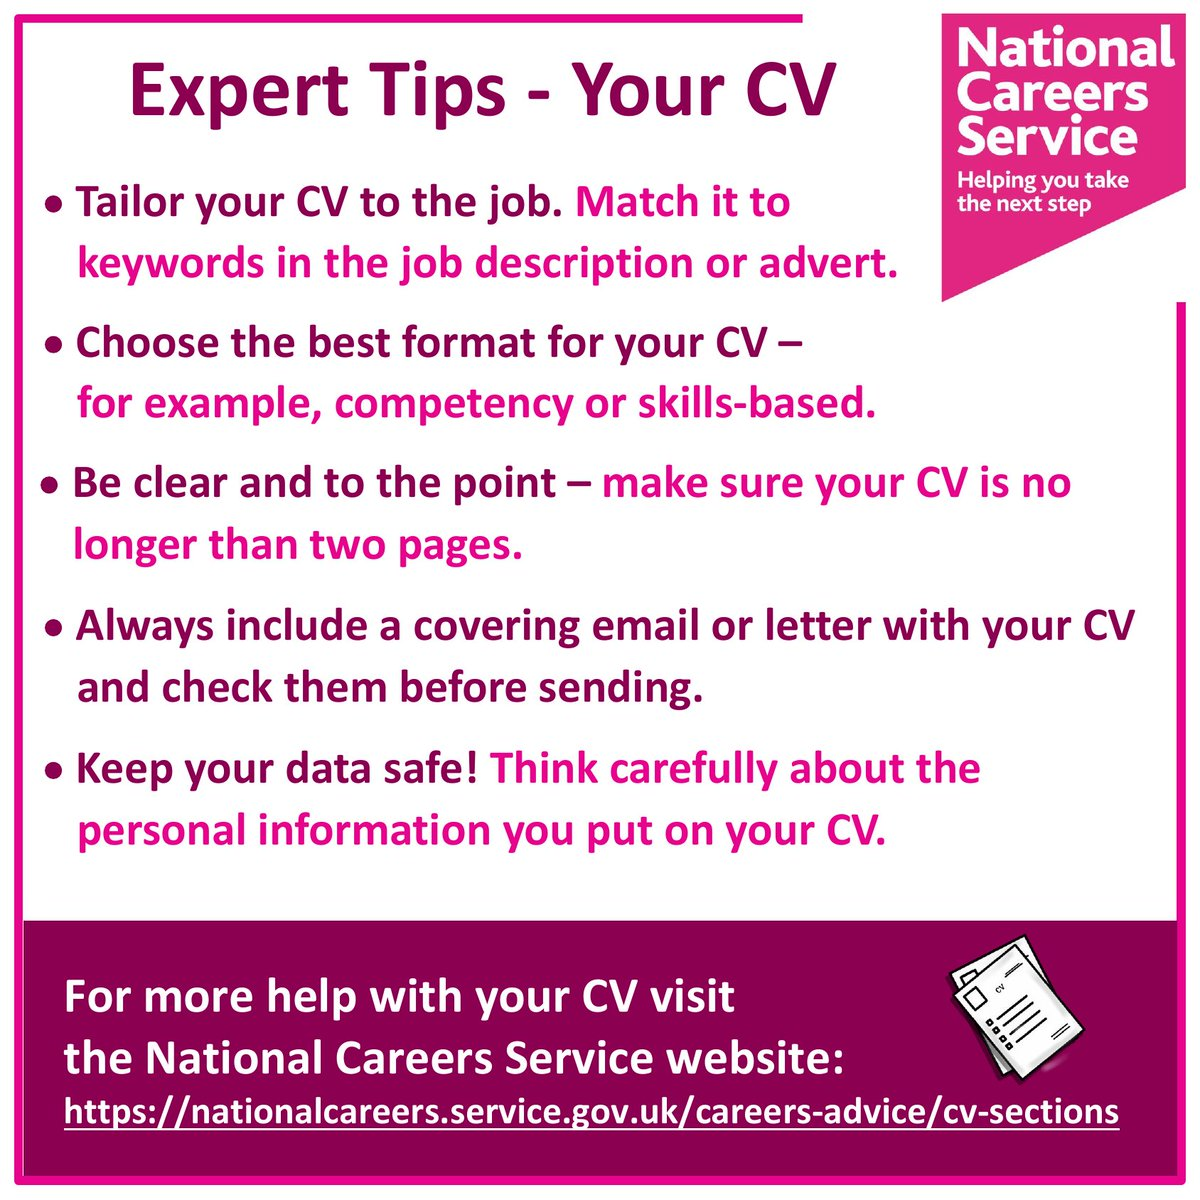 Do you need help with creating a winning #CV? Take a look at our expert tips for your CV.  For more help with your CV visit the National Careers Service website: https://t.co/vu1TAk6uzU  #UKWeekendHour #cvtips #cvhelp #SundayMotivation #Staffordshire #Sandwell @JCPInTheBC https://t.co/bhNYuCw1Dq